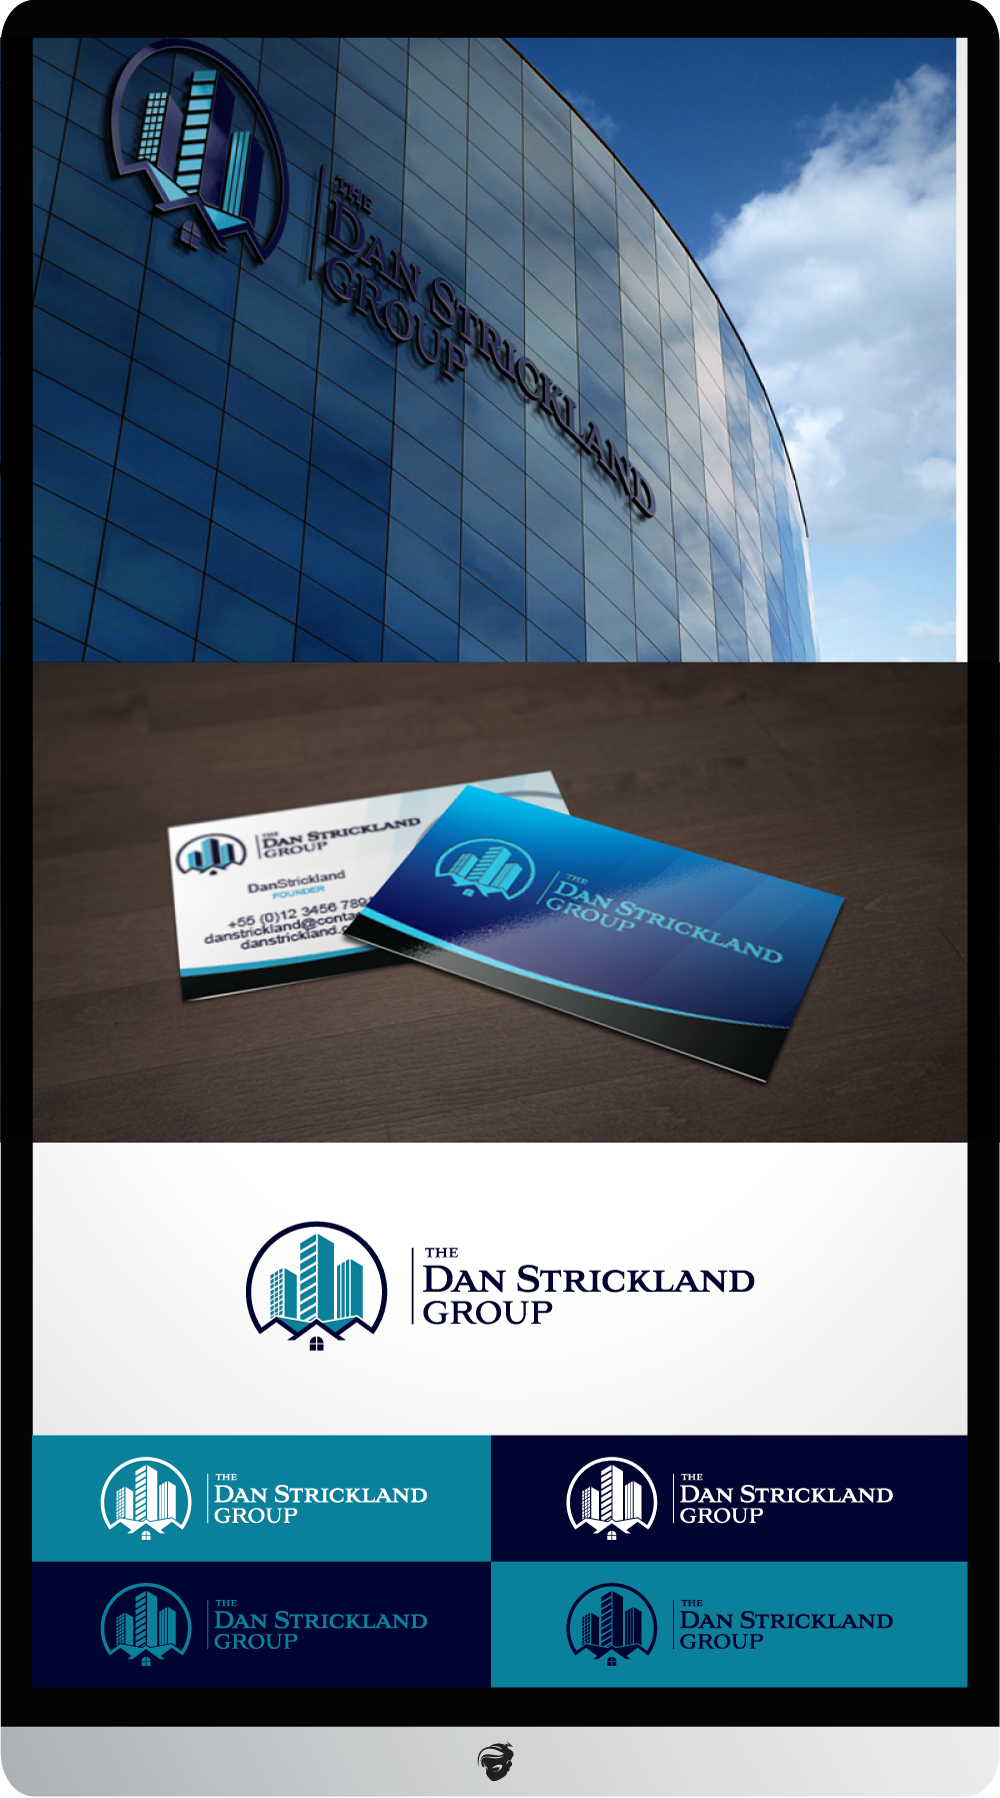 Logo Design by zesthar - Entry No. 377 in the Logo Design Contest Creative Logo Design for The Dan Strickland Group.